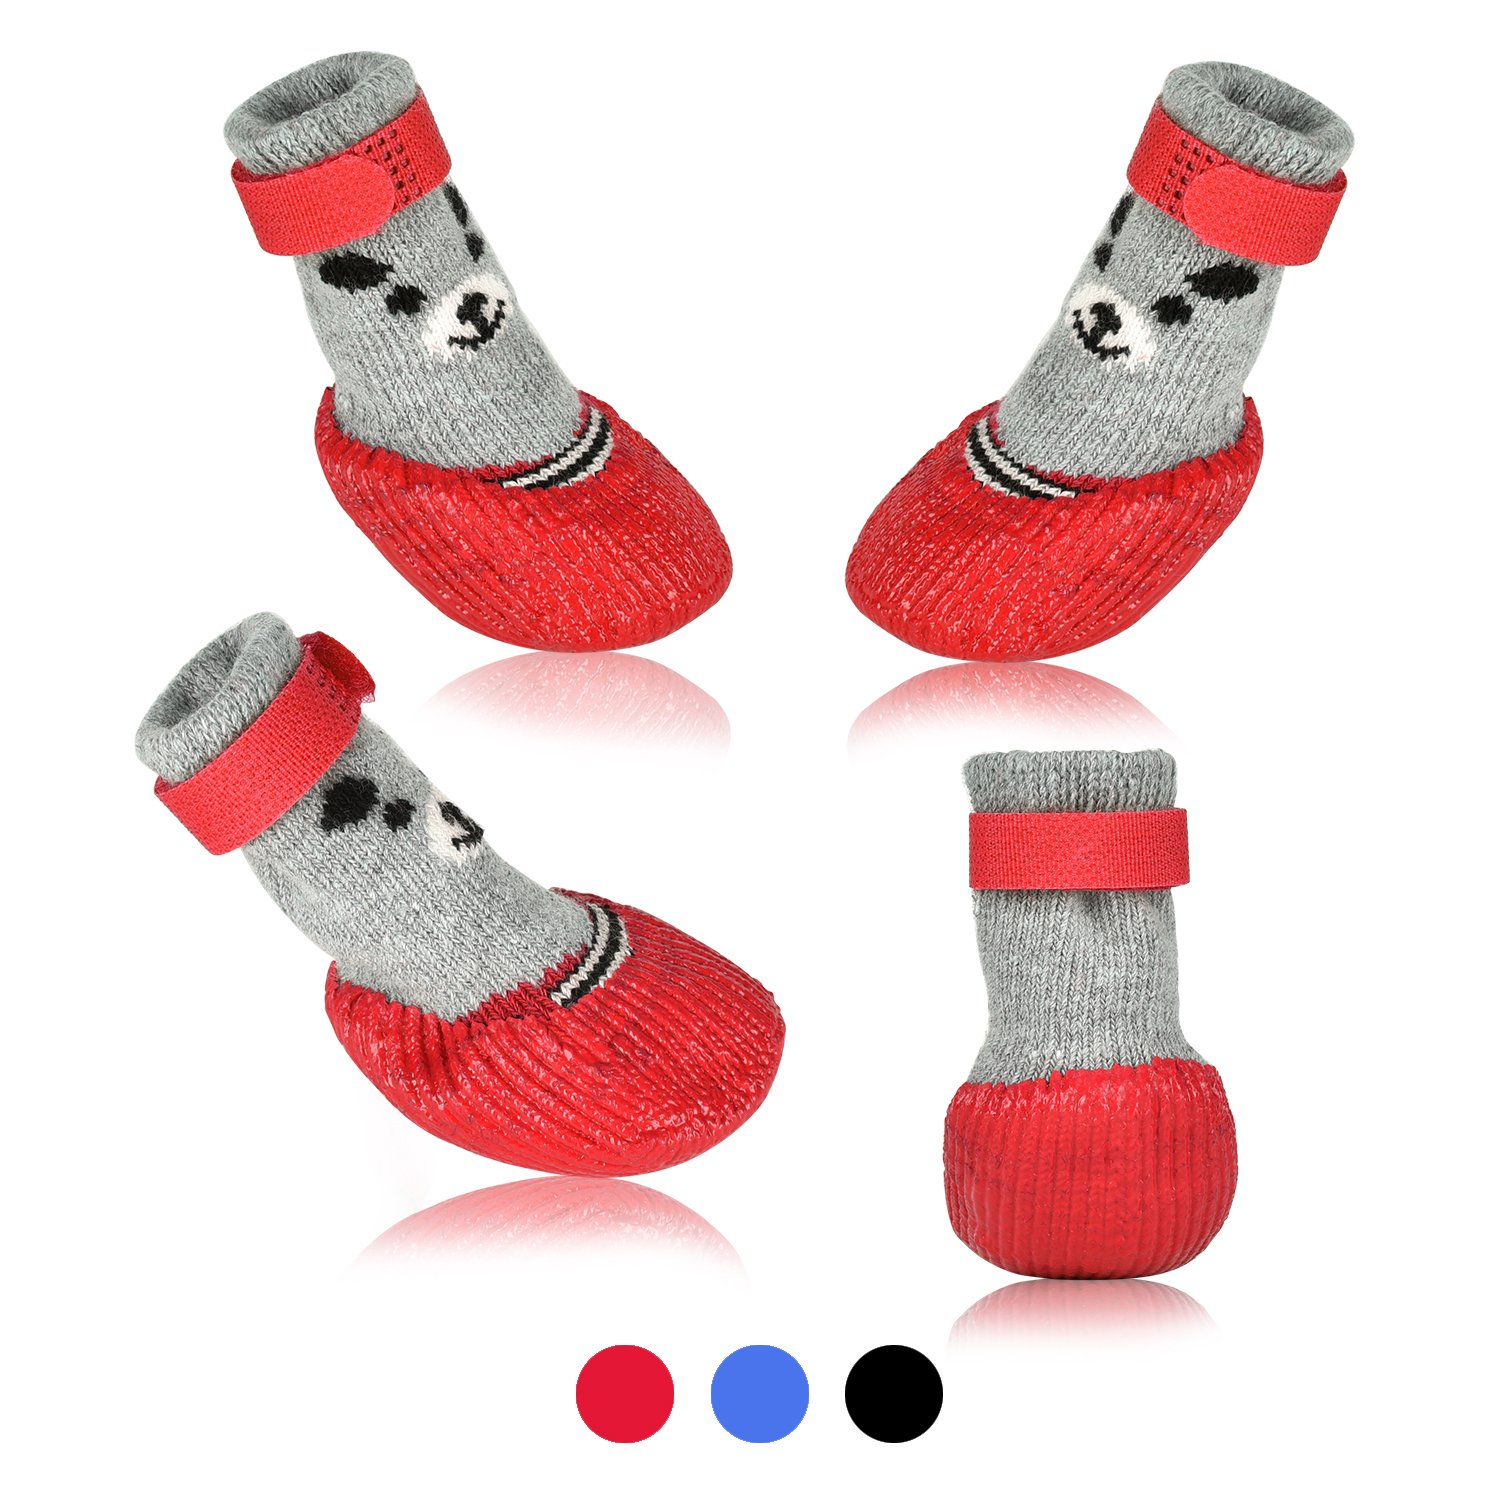 SMARTHING Dog Cat Boots Shoes Socks with Adjustable Waterproof Breathable and Anti-Slip Sole All Weather Protect Paws(Only for Tiny Dog) (L, Red)